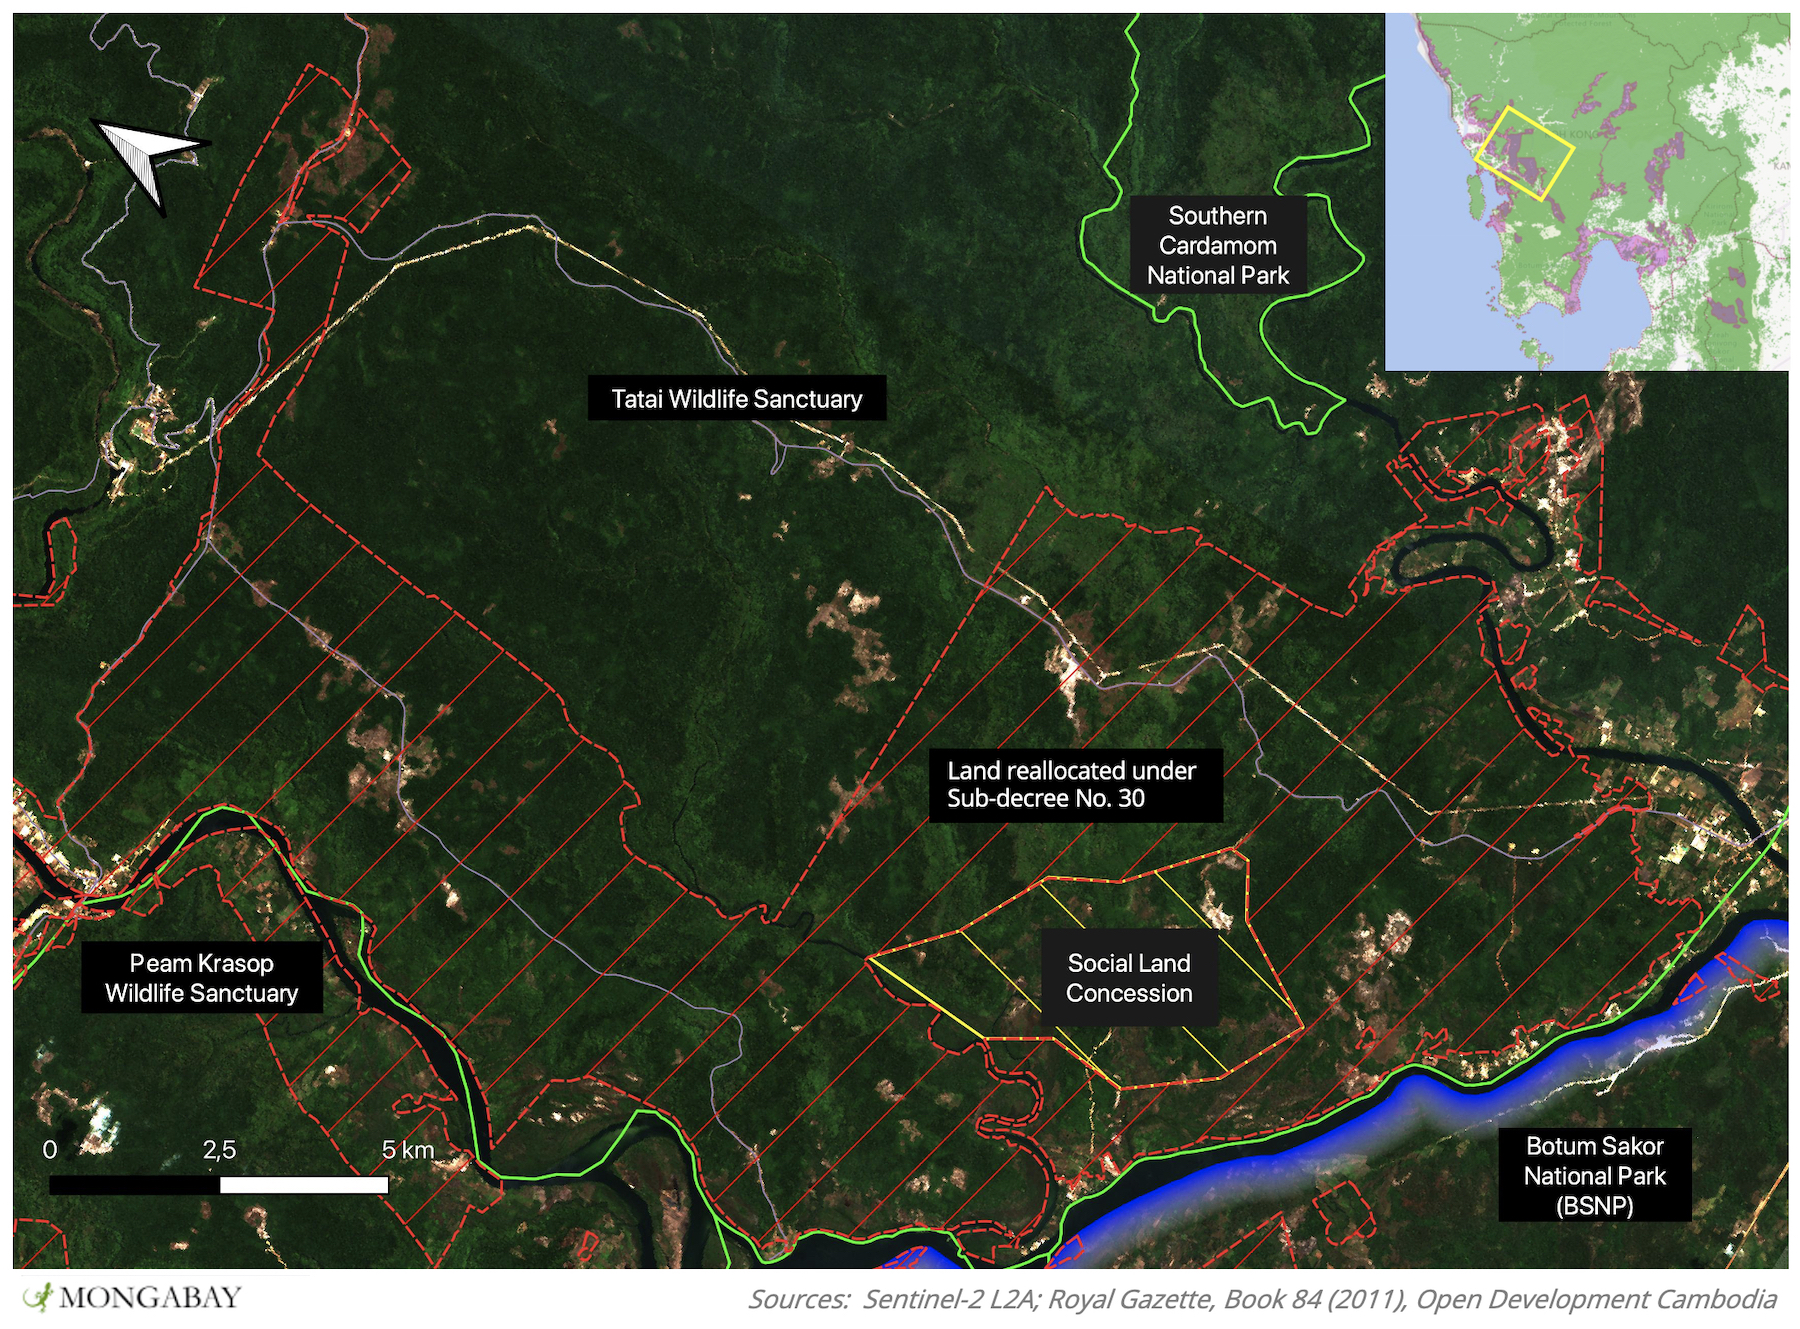 Areas of the allocated sub-decree (red) and a social land concession granted to the military (yellow) in the Tatai Wildlife Sanctuary overlaid onto Satellite imagery from 27/02/2021. Green lines represent protected area boundaries.